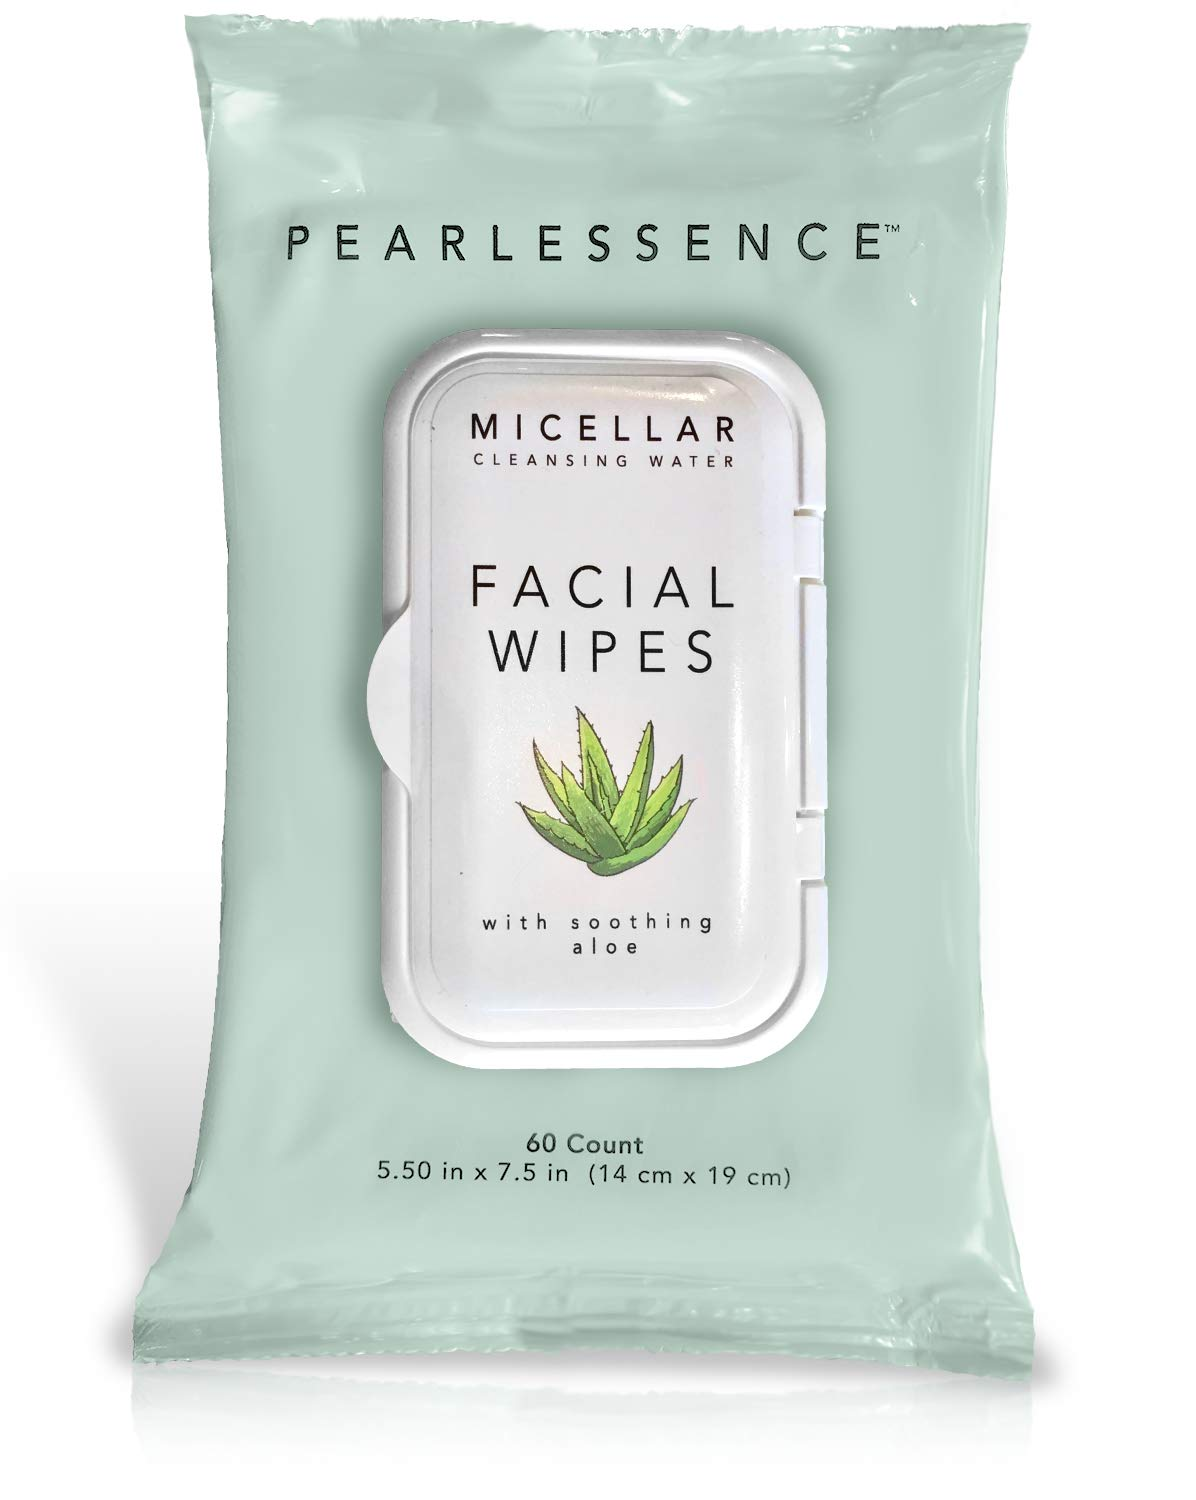 Micellar Cleansing Facial Makeup Remover Wipes w/Soothing Aloe, 60 Count (1 Pack)